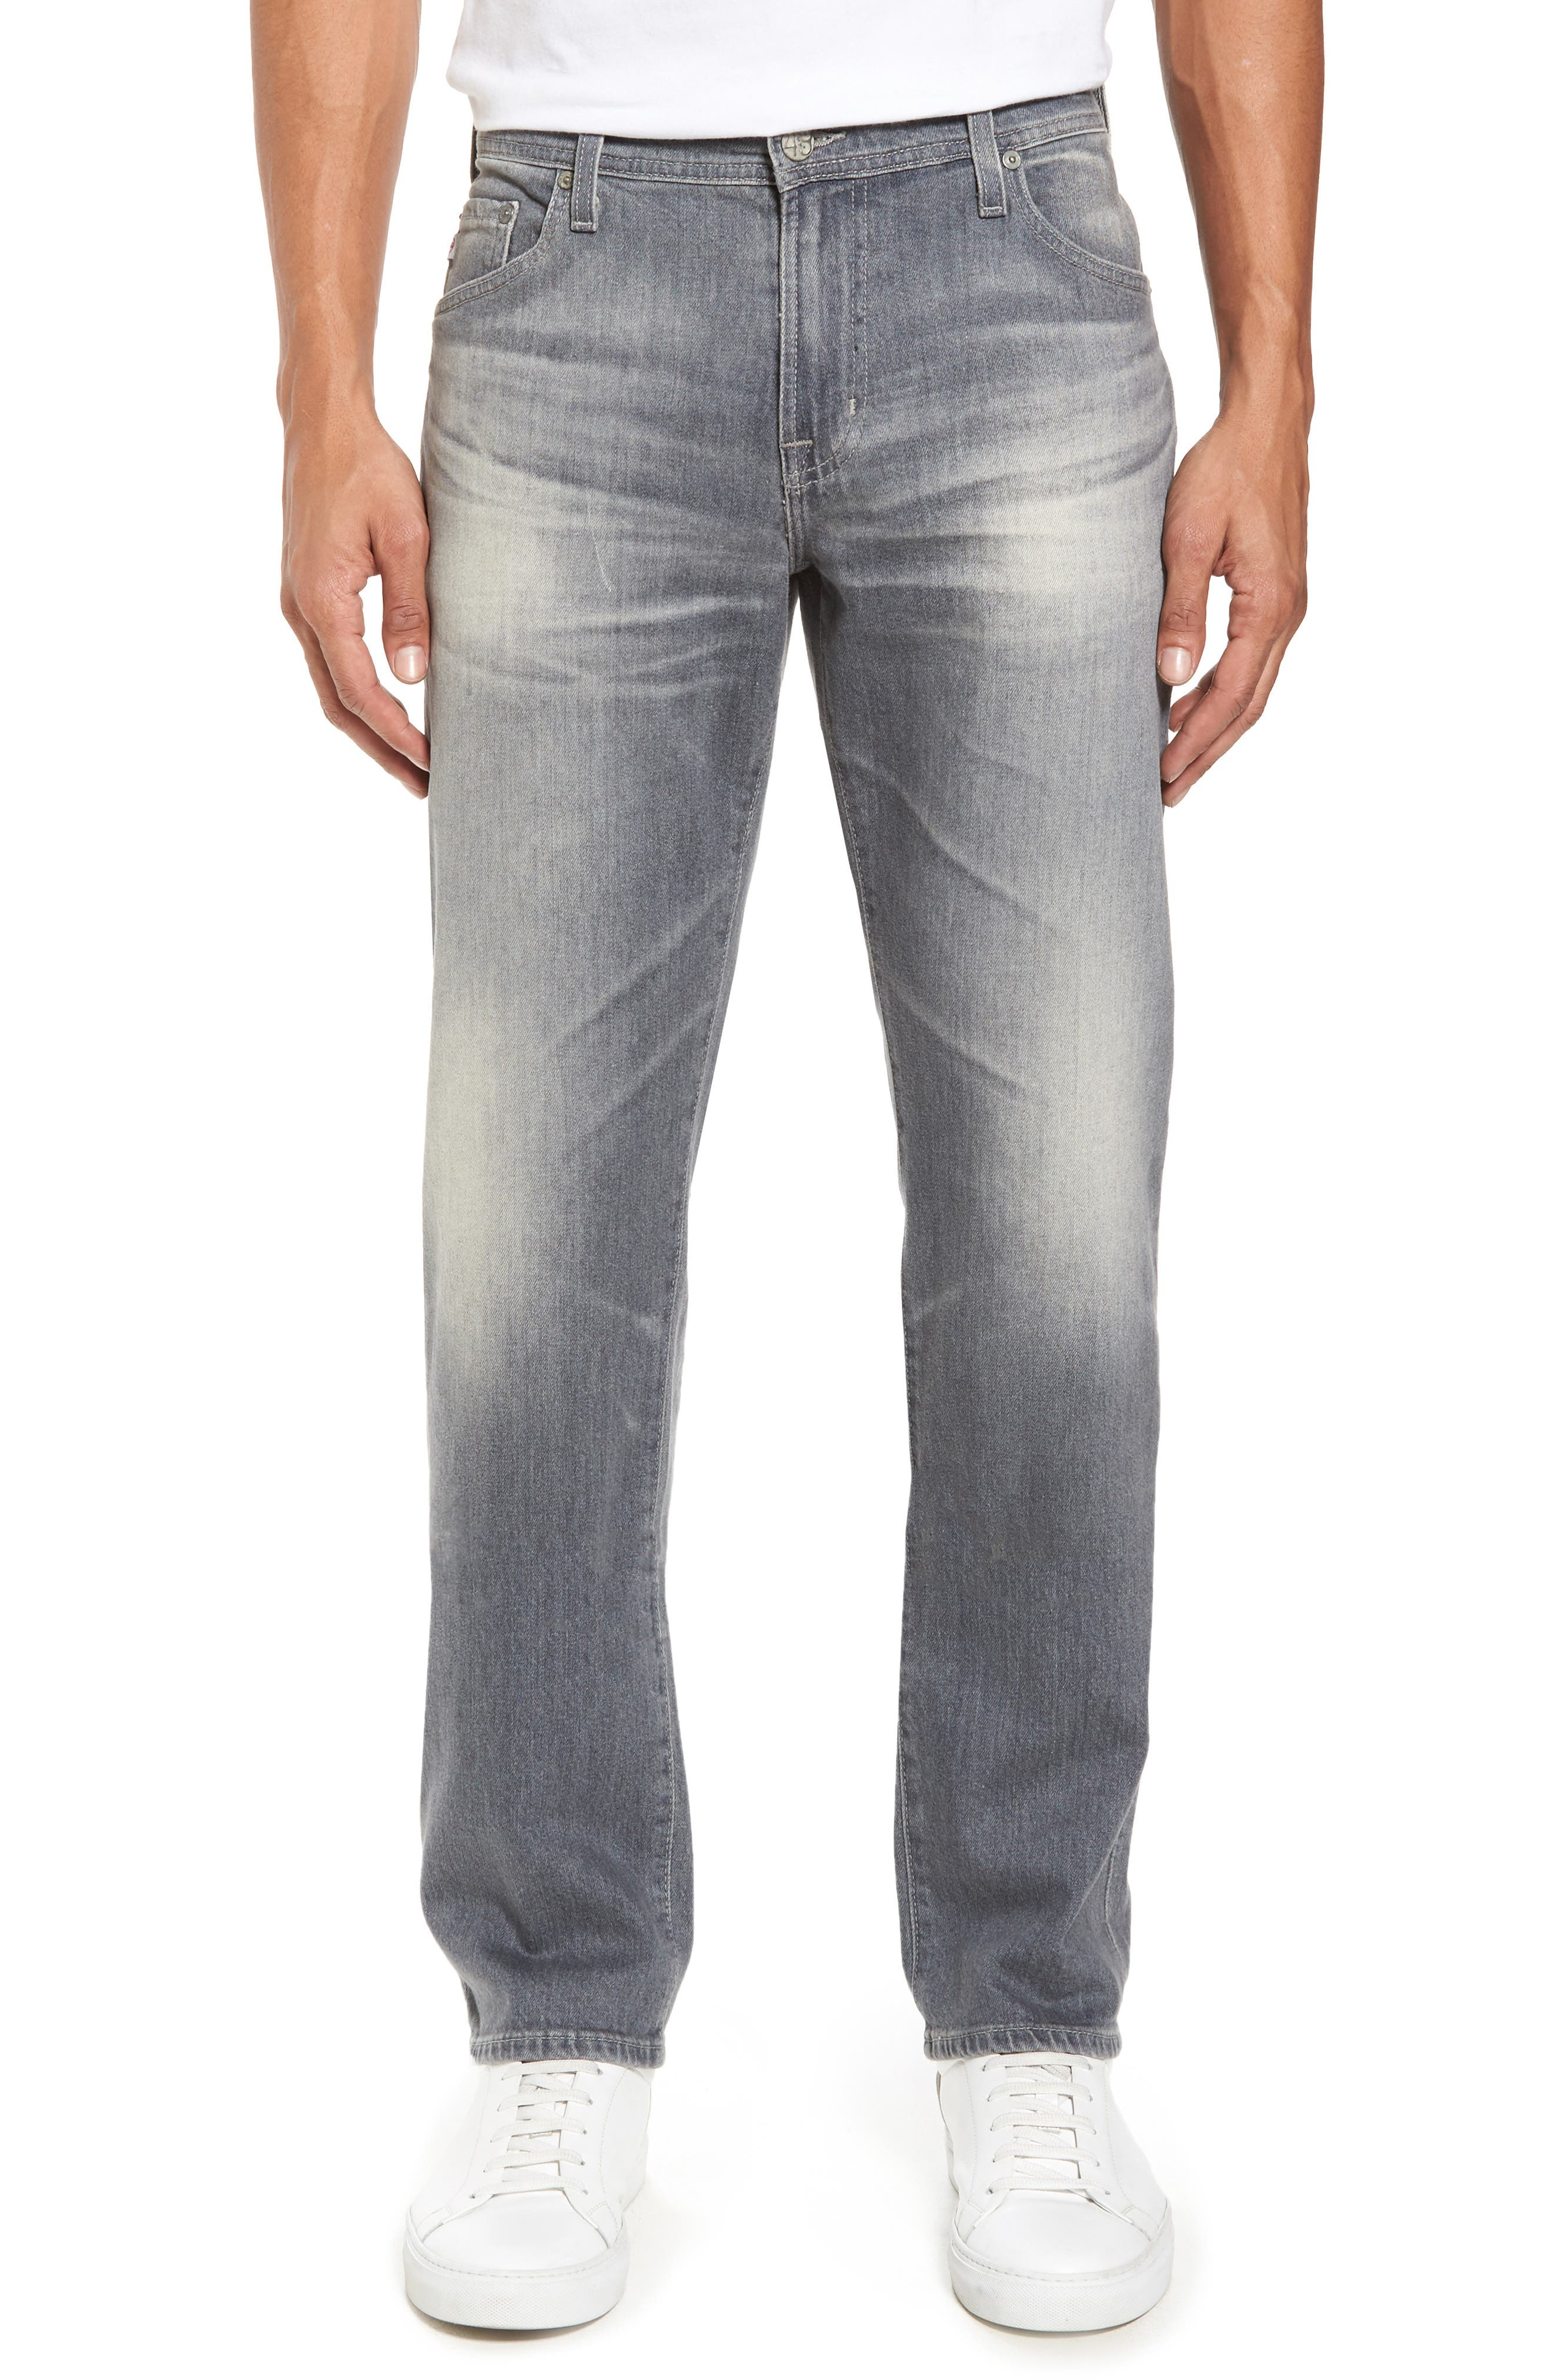 Alternate Image 1 Selected - AG Graduate Slim Straight Fit Jeans (13 Years Fortress)